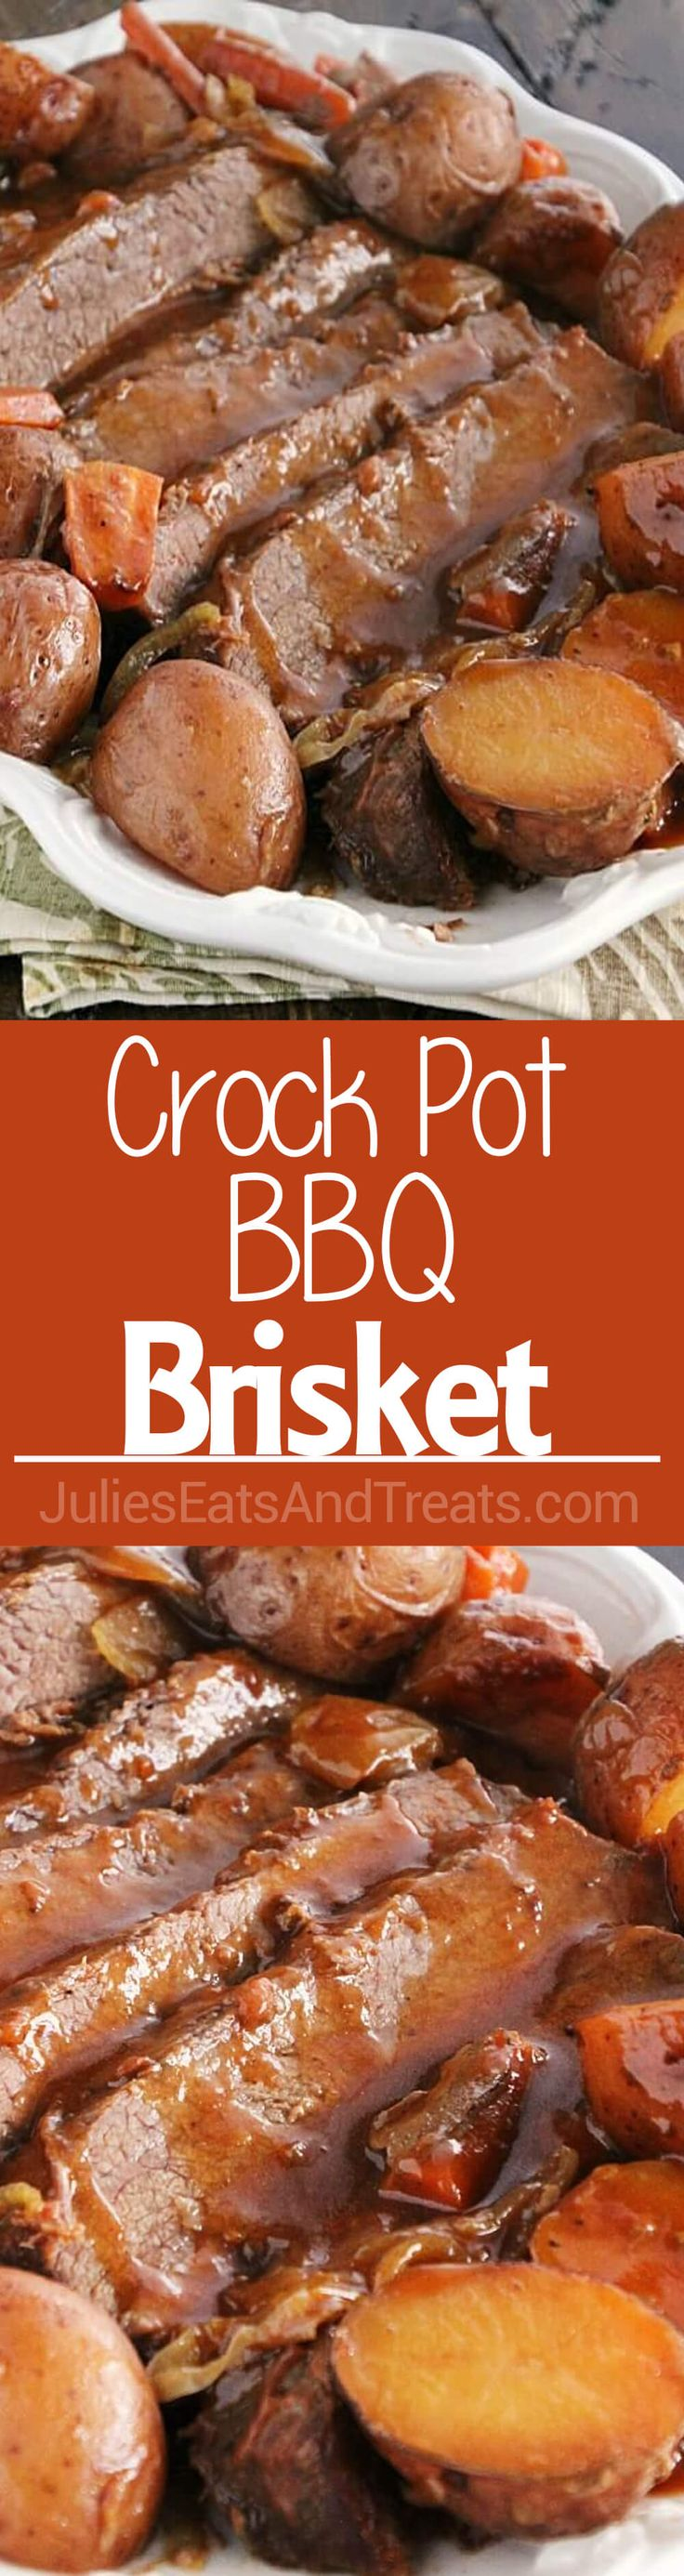 Crock Pot BBQ Brisket Recipe ~ Delicious, Slow Cooked Brisket with Onions, Carrots and Potatoes Smothered in a BBQ Sauce!